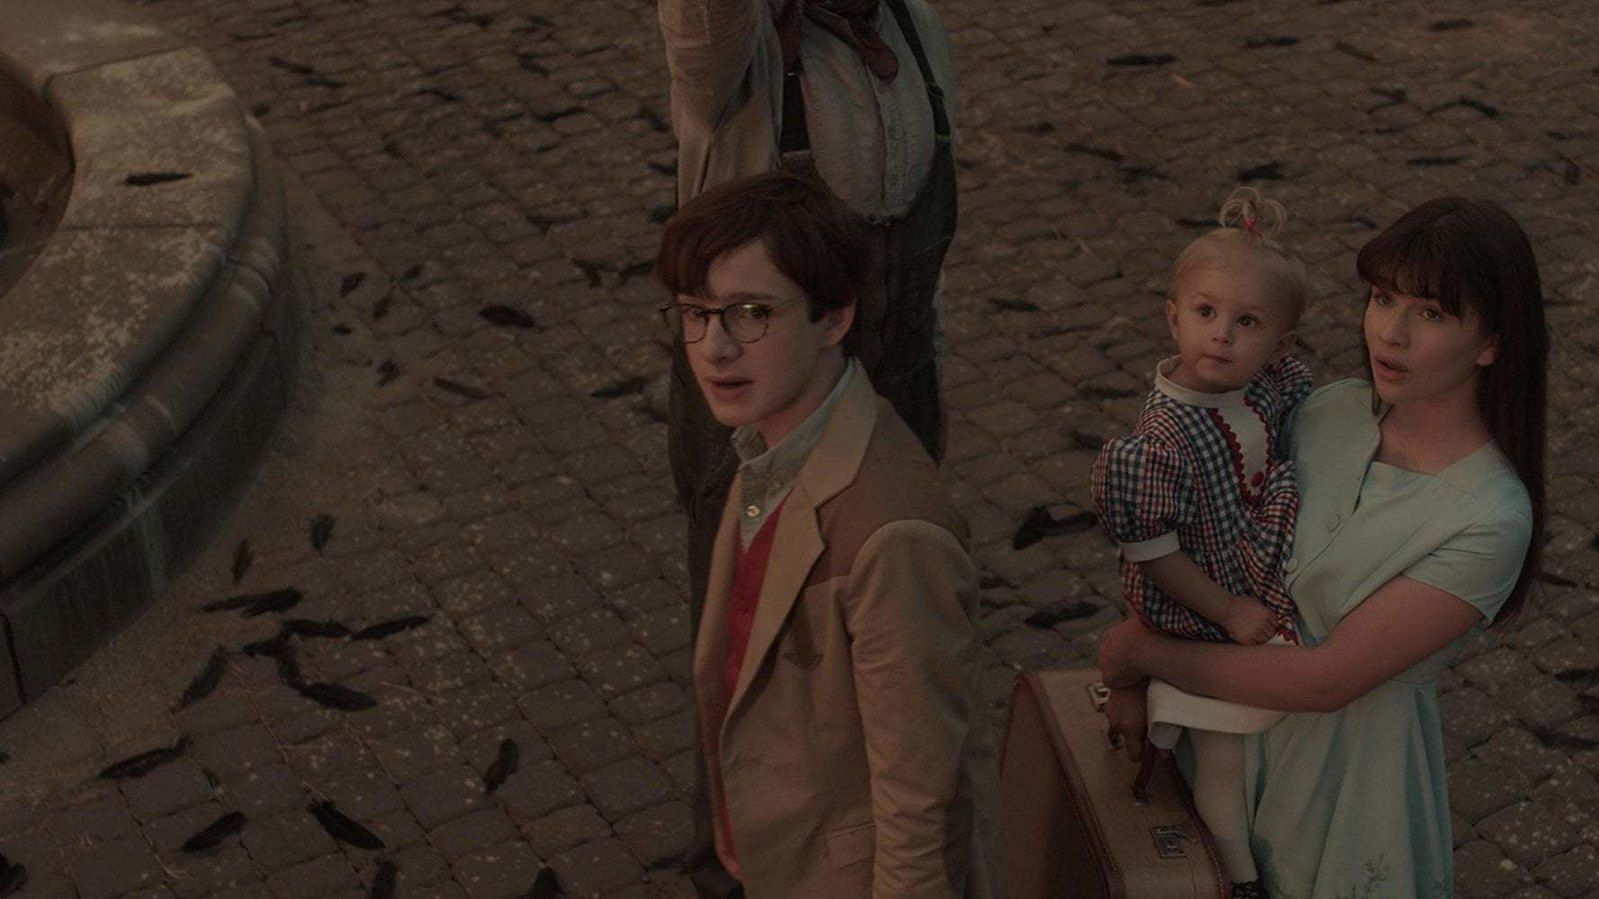 Pin On A Series Of Unfortunate Events